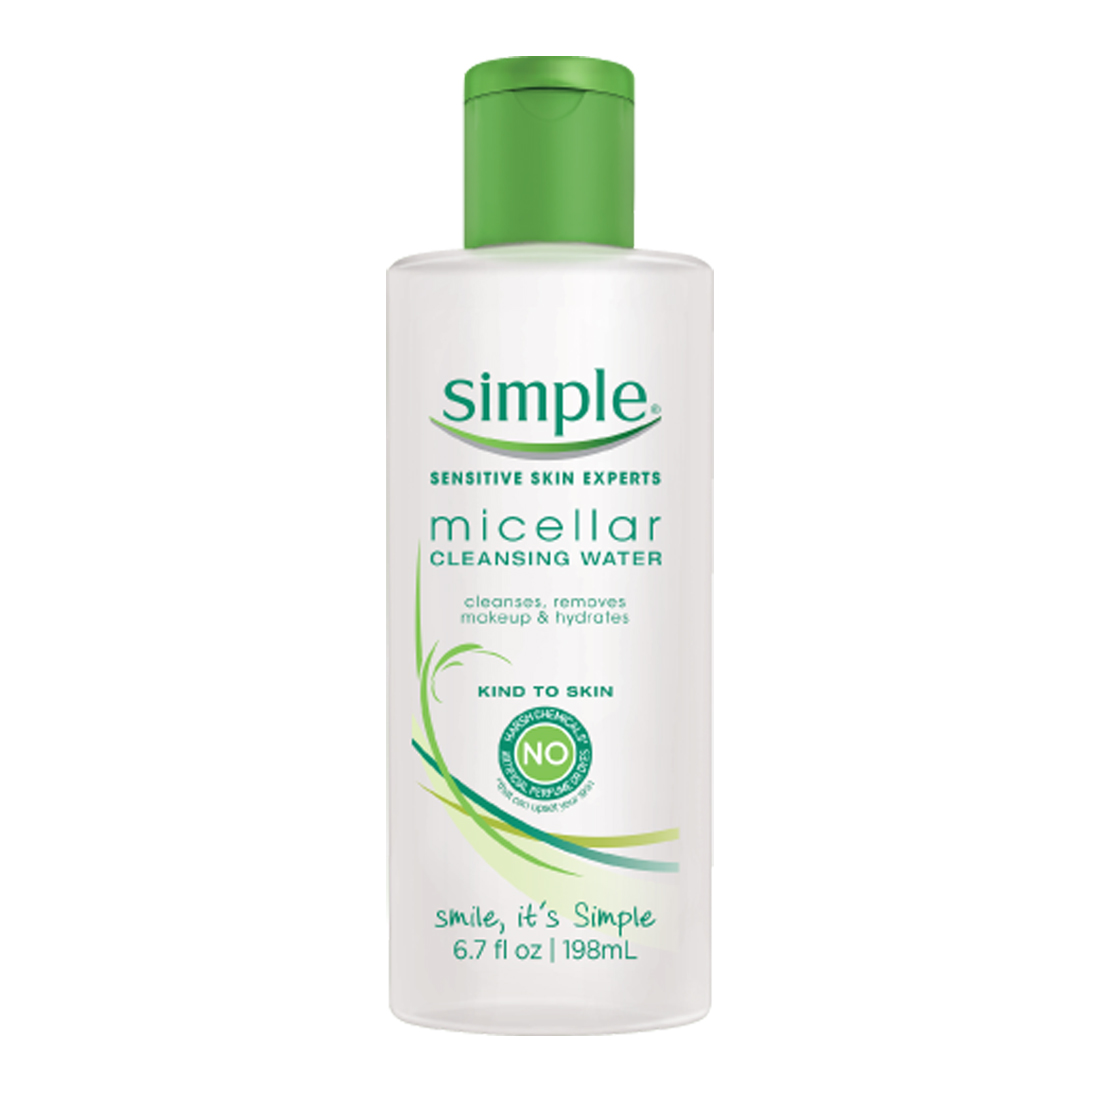 Simple-Micellar-Cleansing-Water.jpg